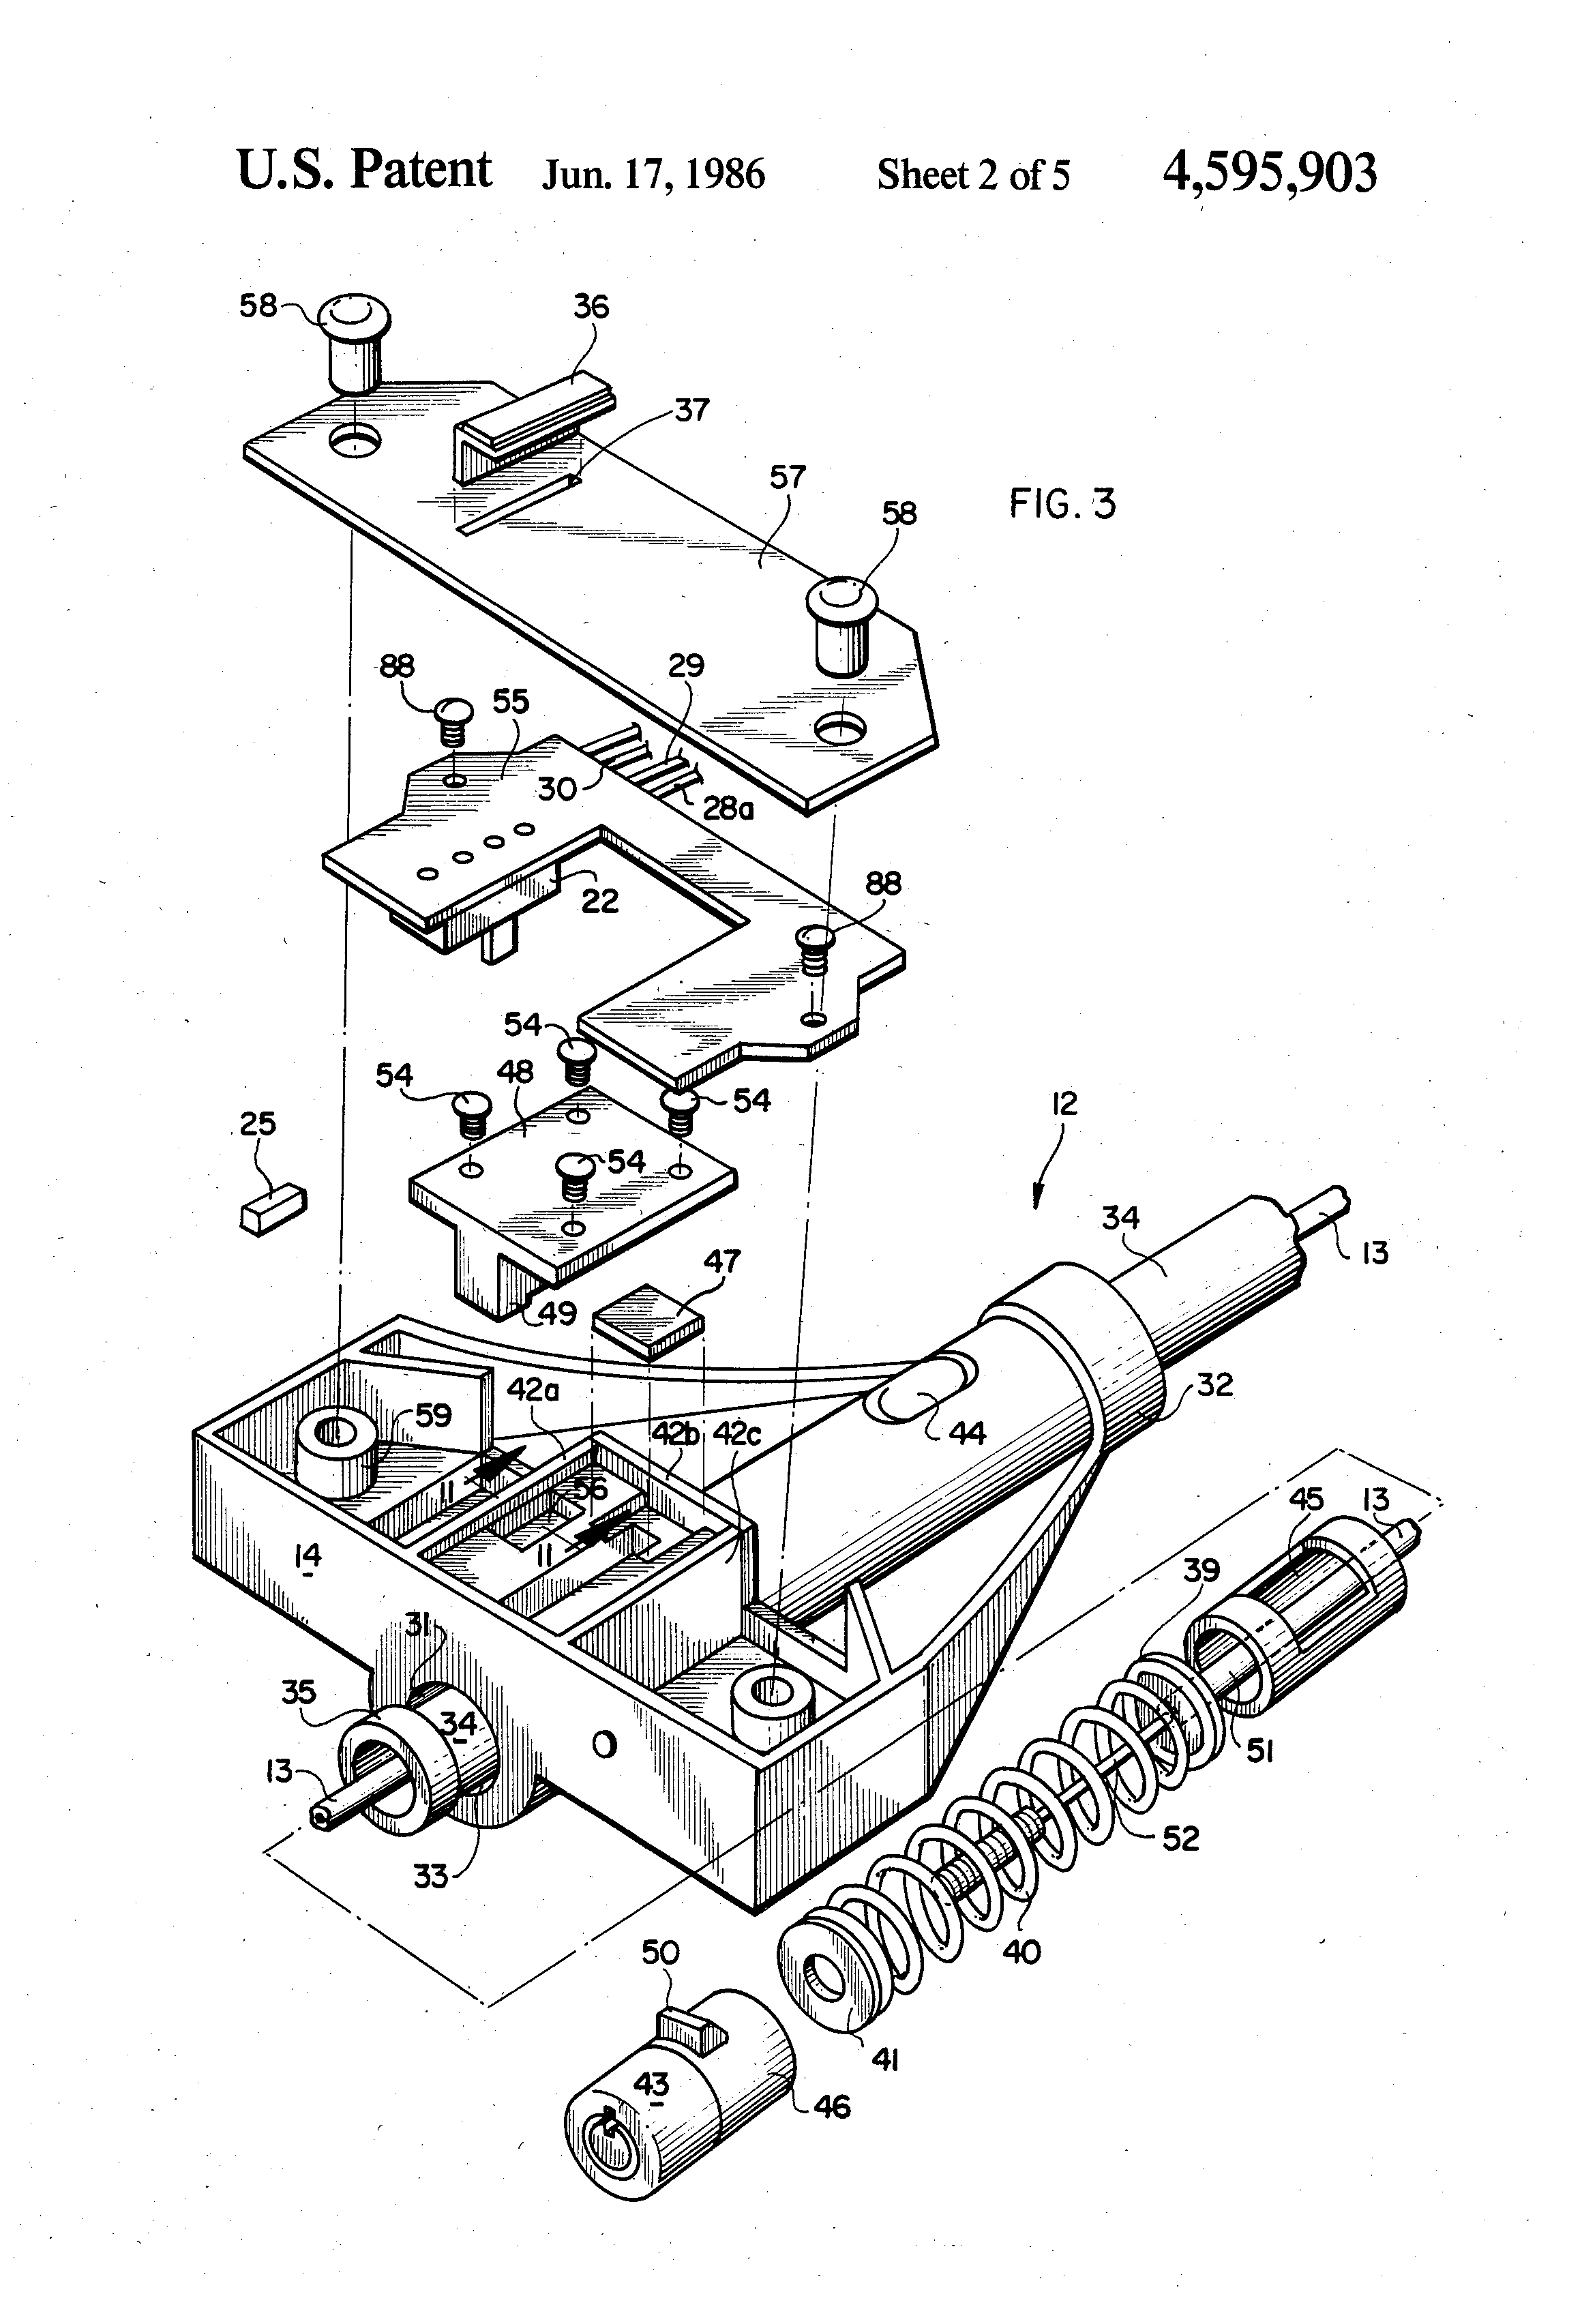 US4595903 2 bulldog wiring diagrams remote starter tractor repair with,Audiovox Wiring Diagrams